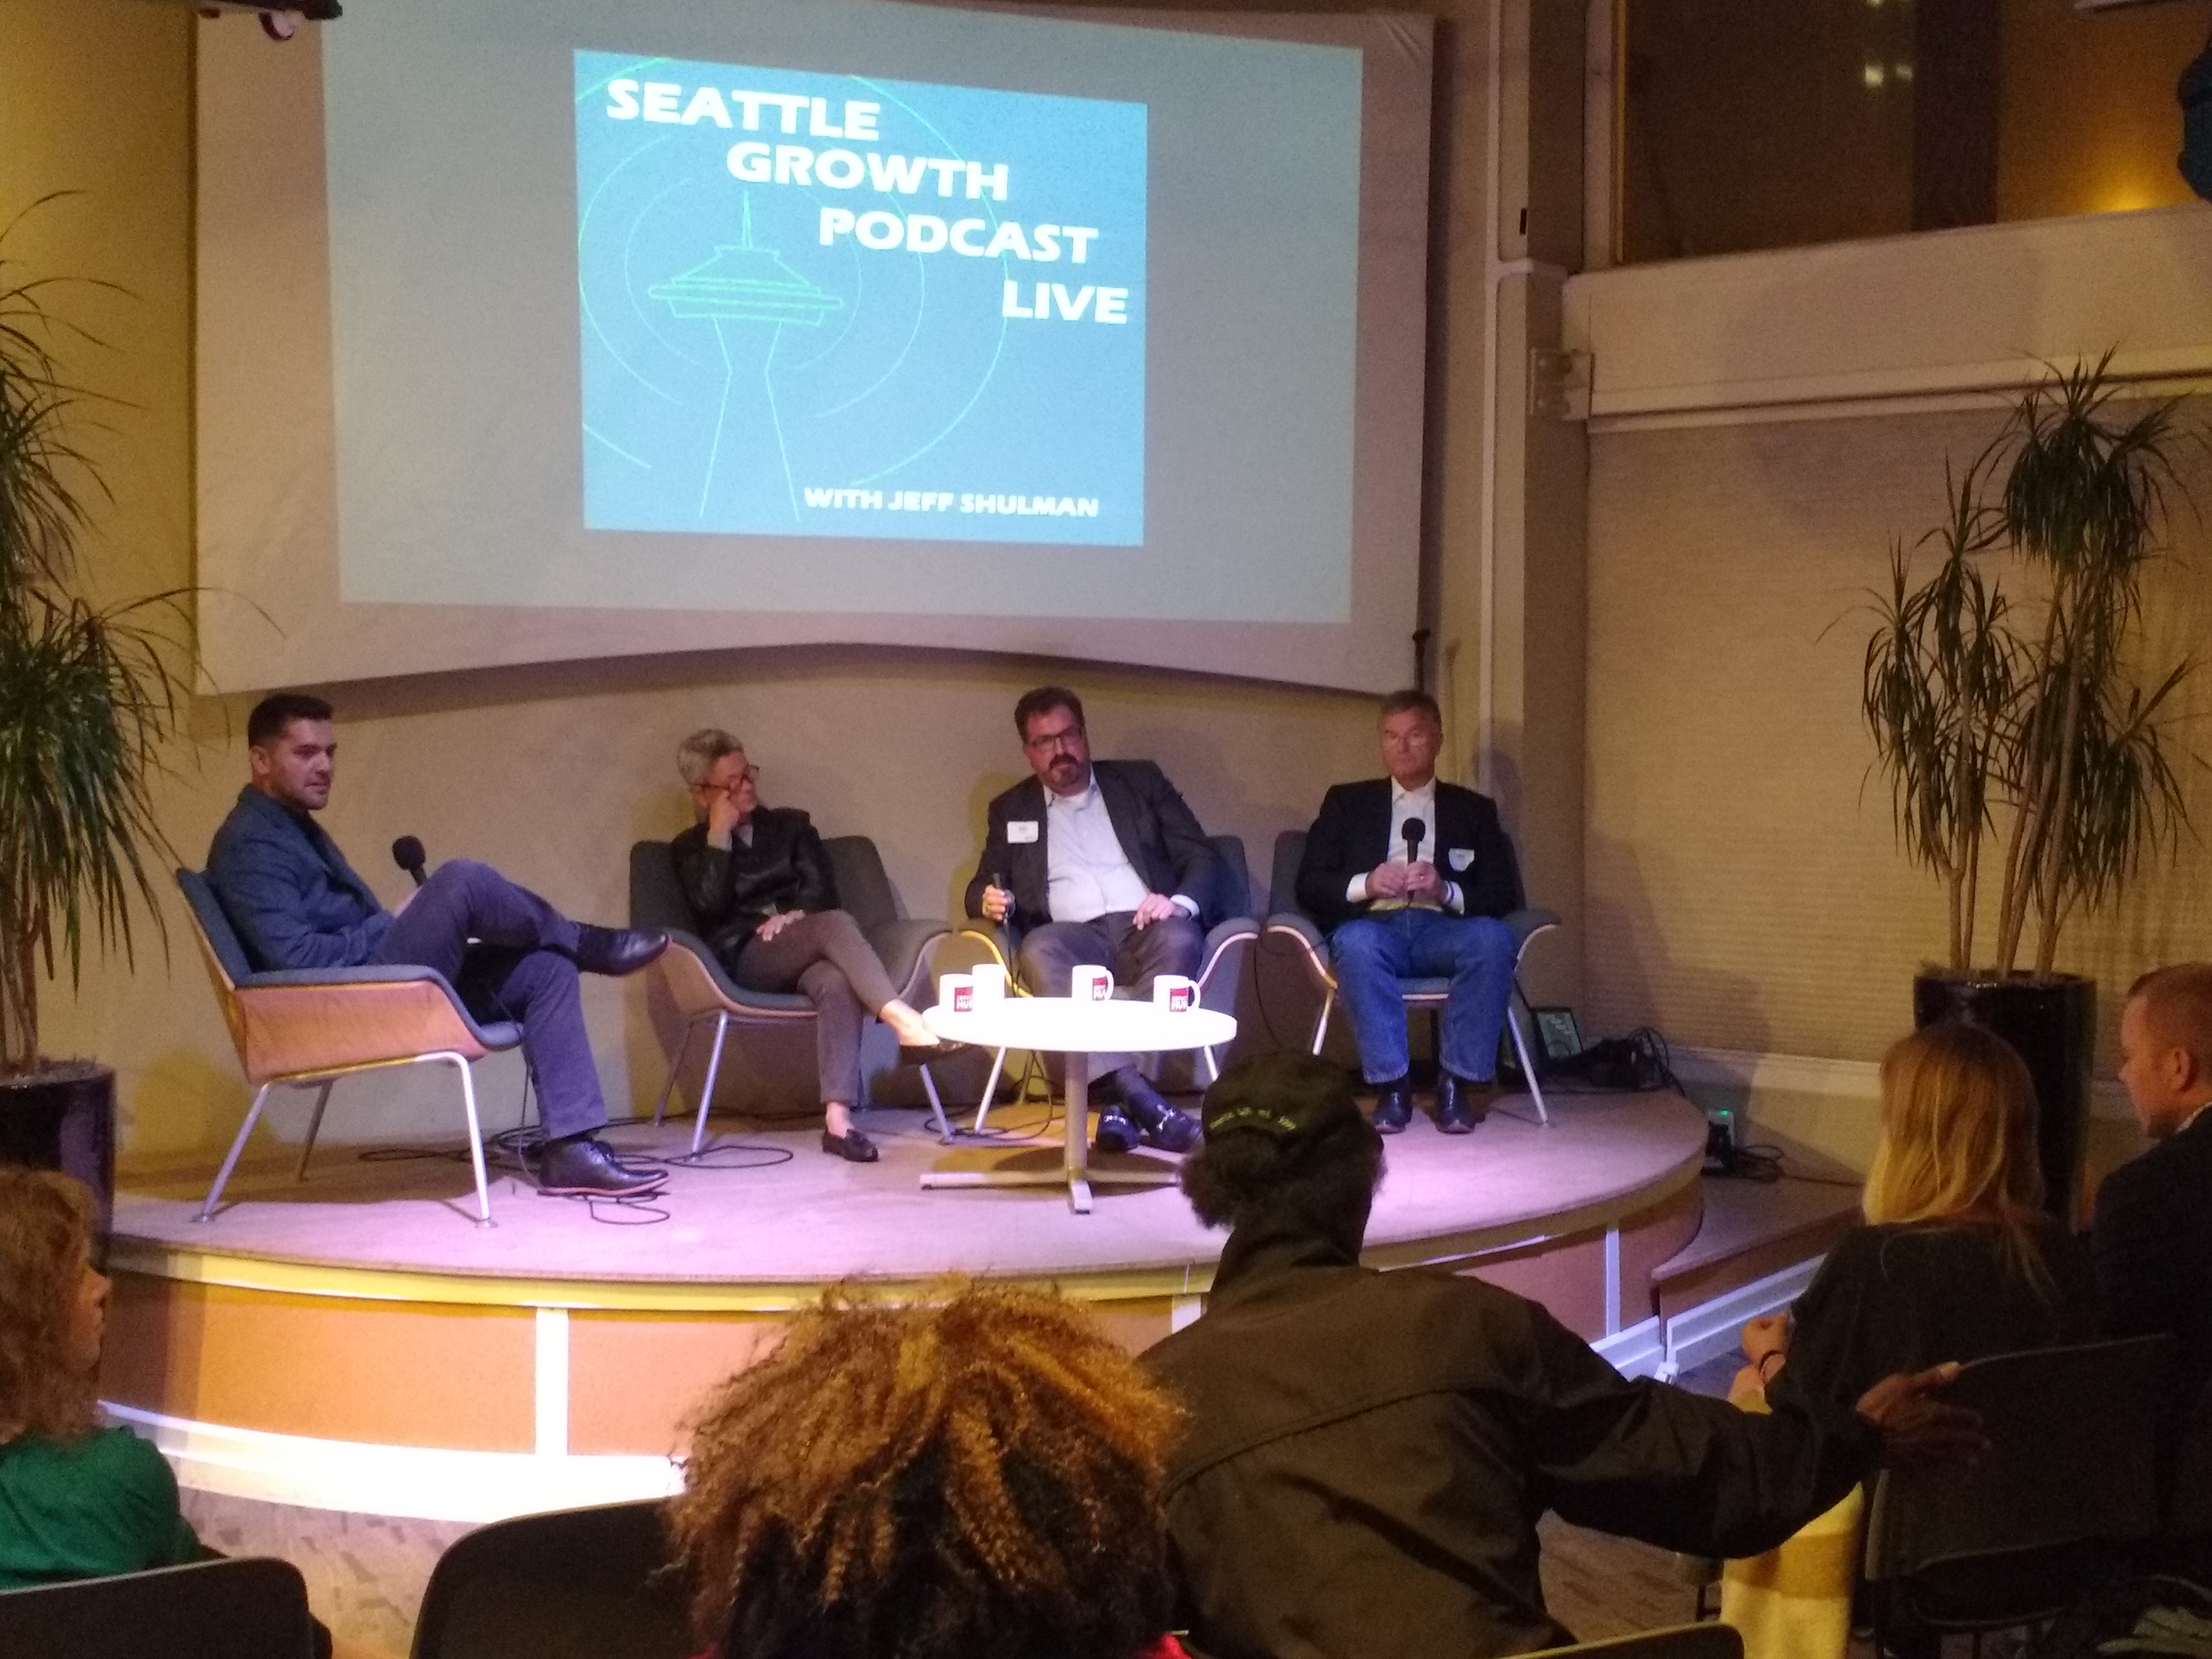 Seattle Growth podcast taping at Impact Hub Seattle